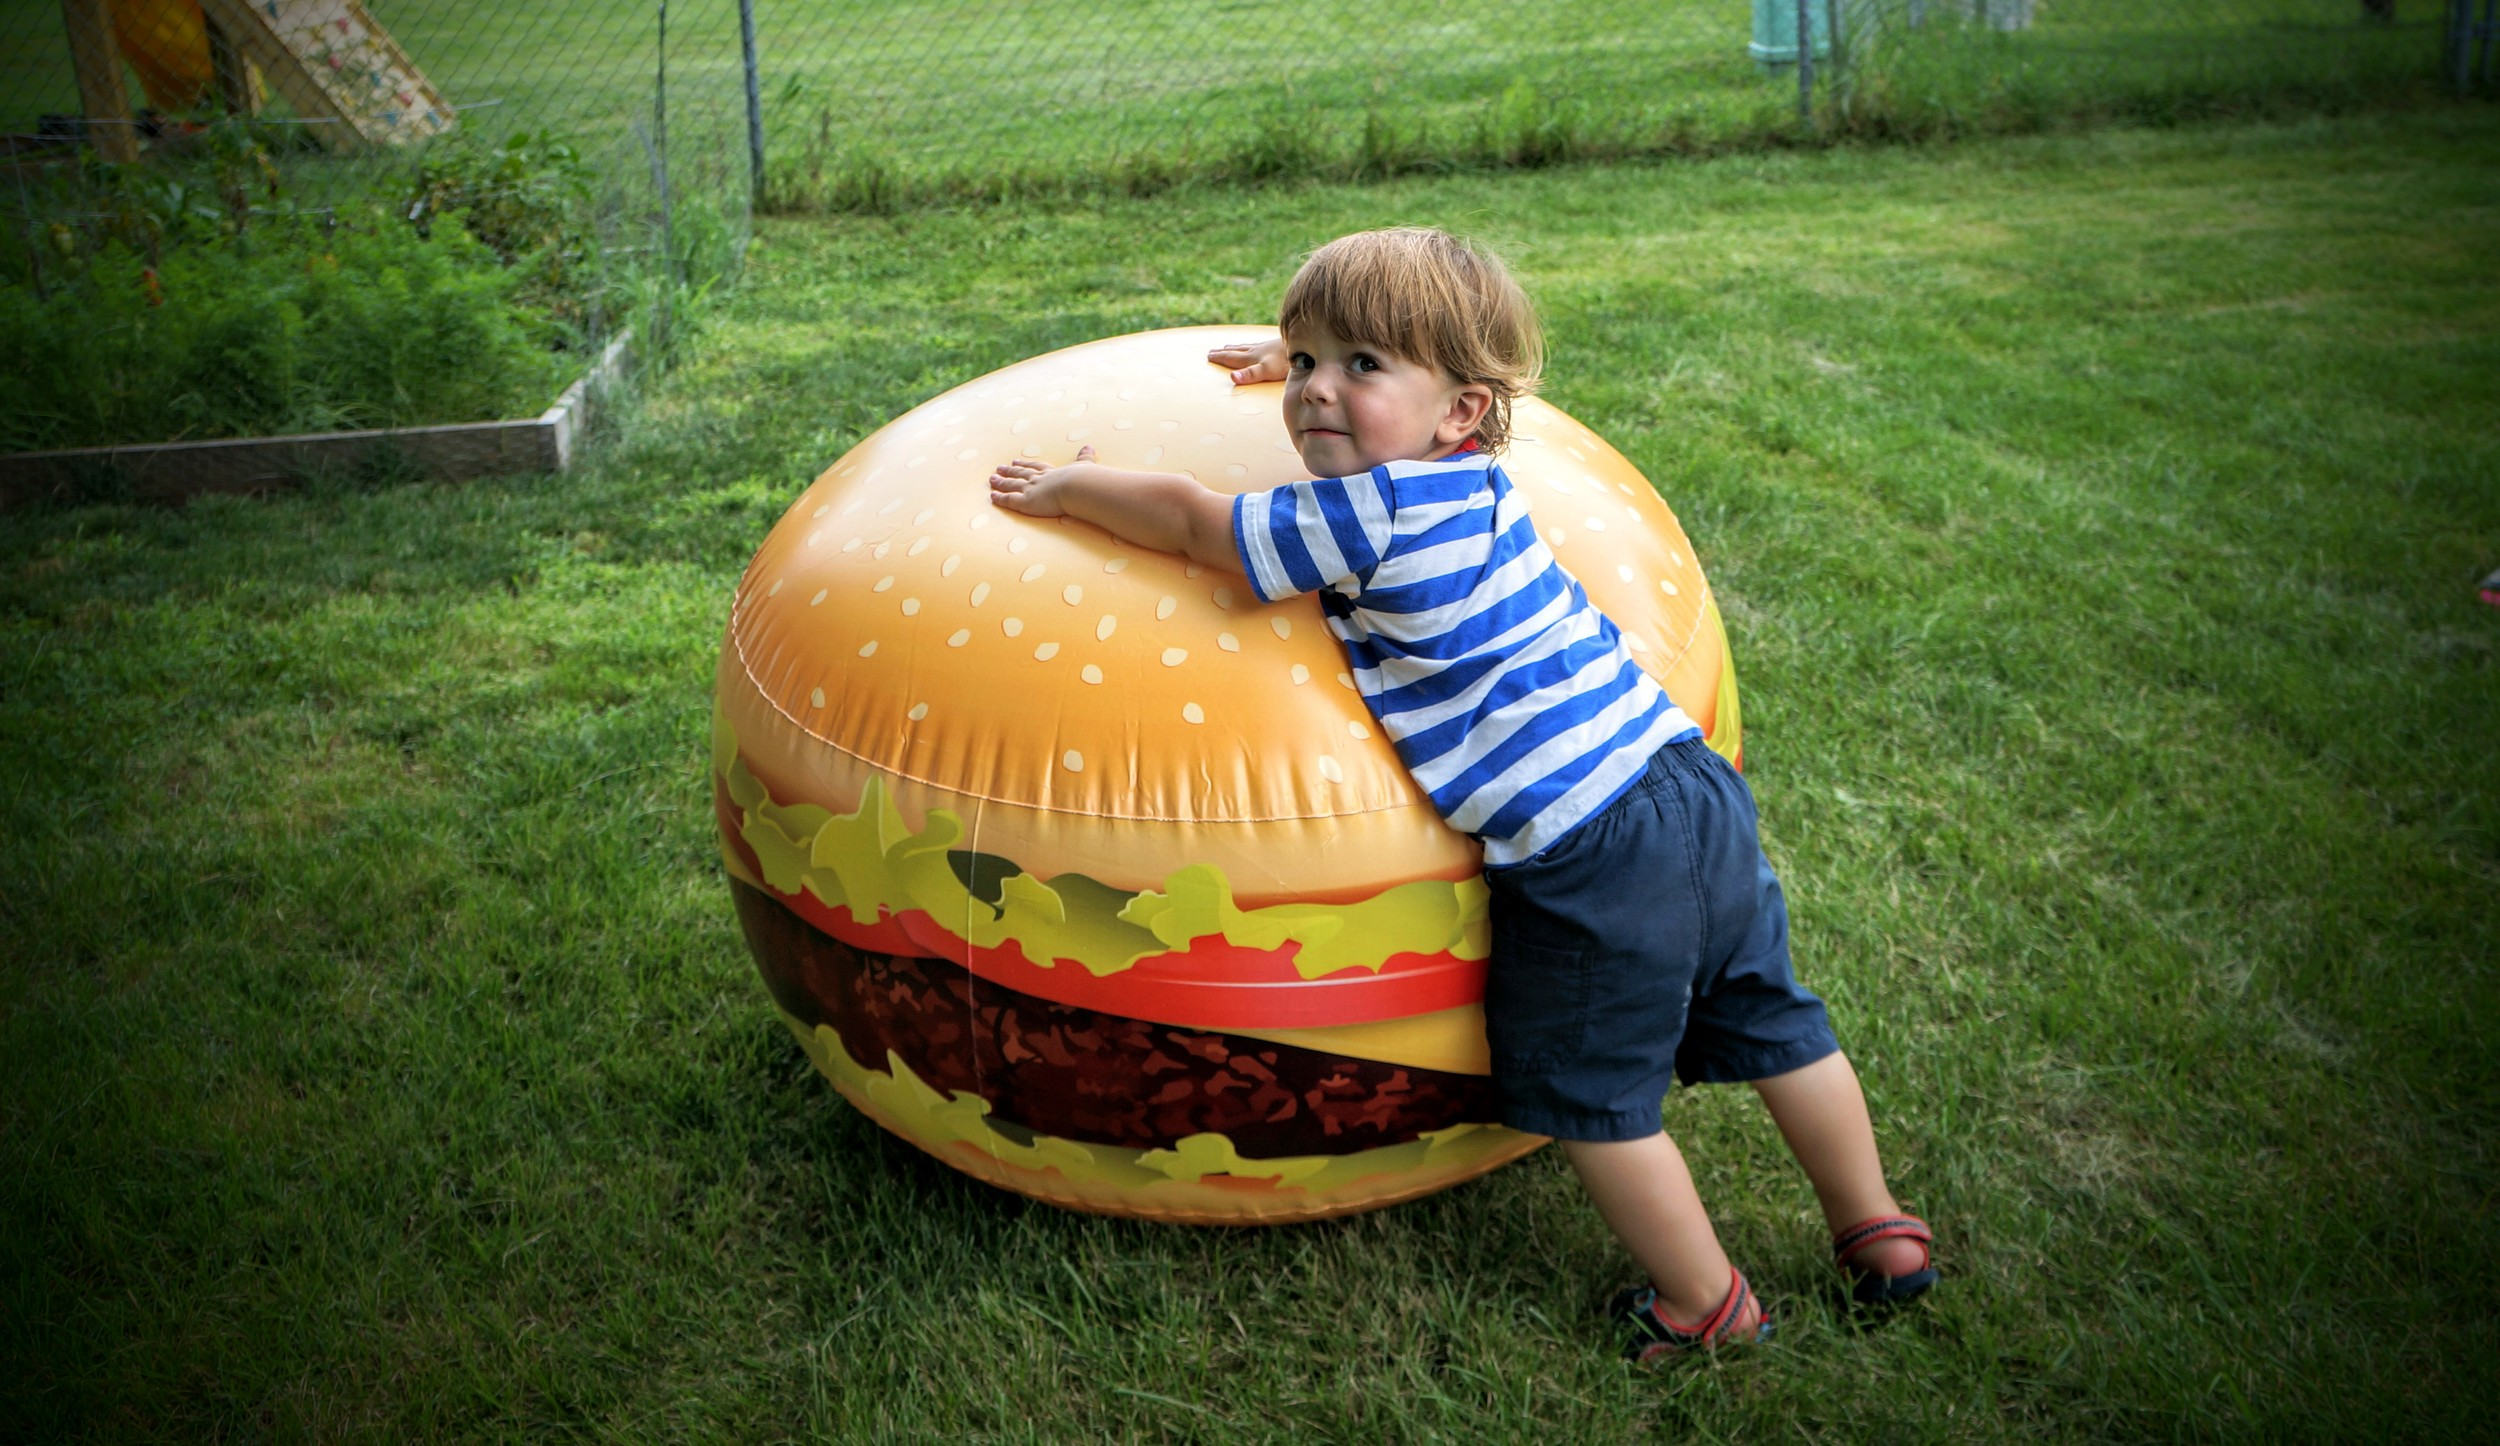 Giant Cheeseburger!